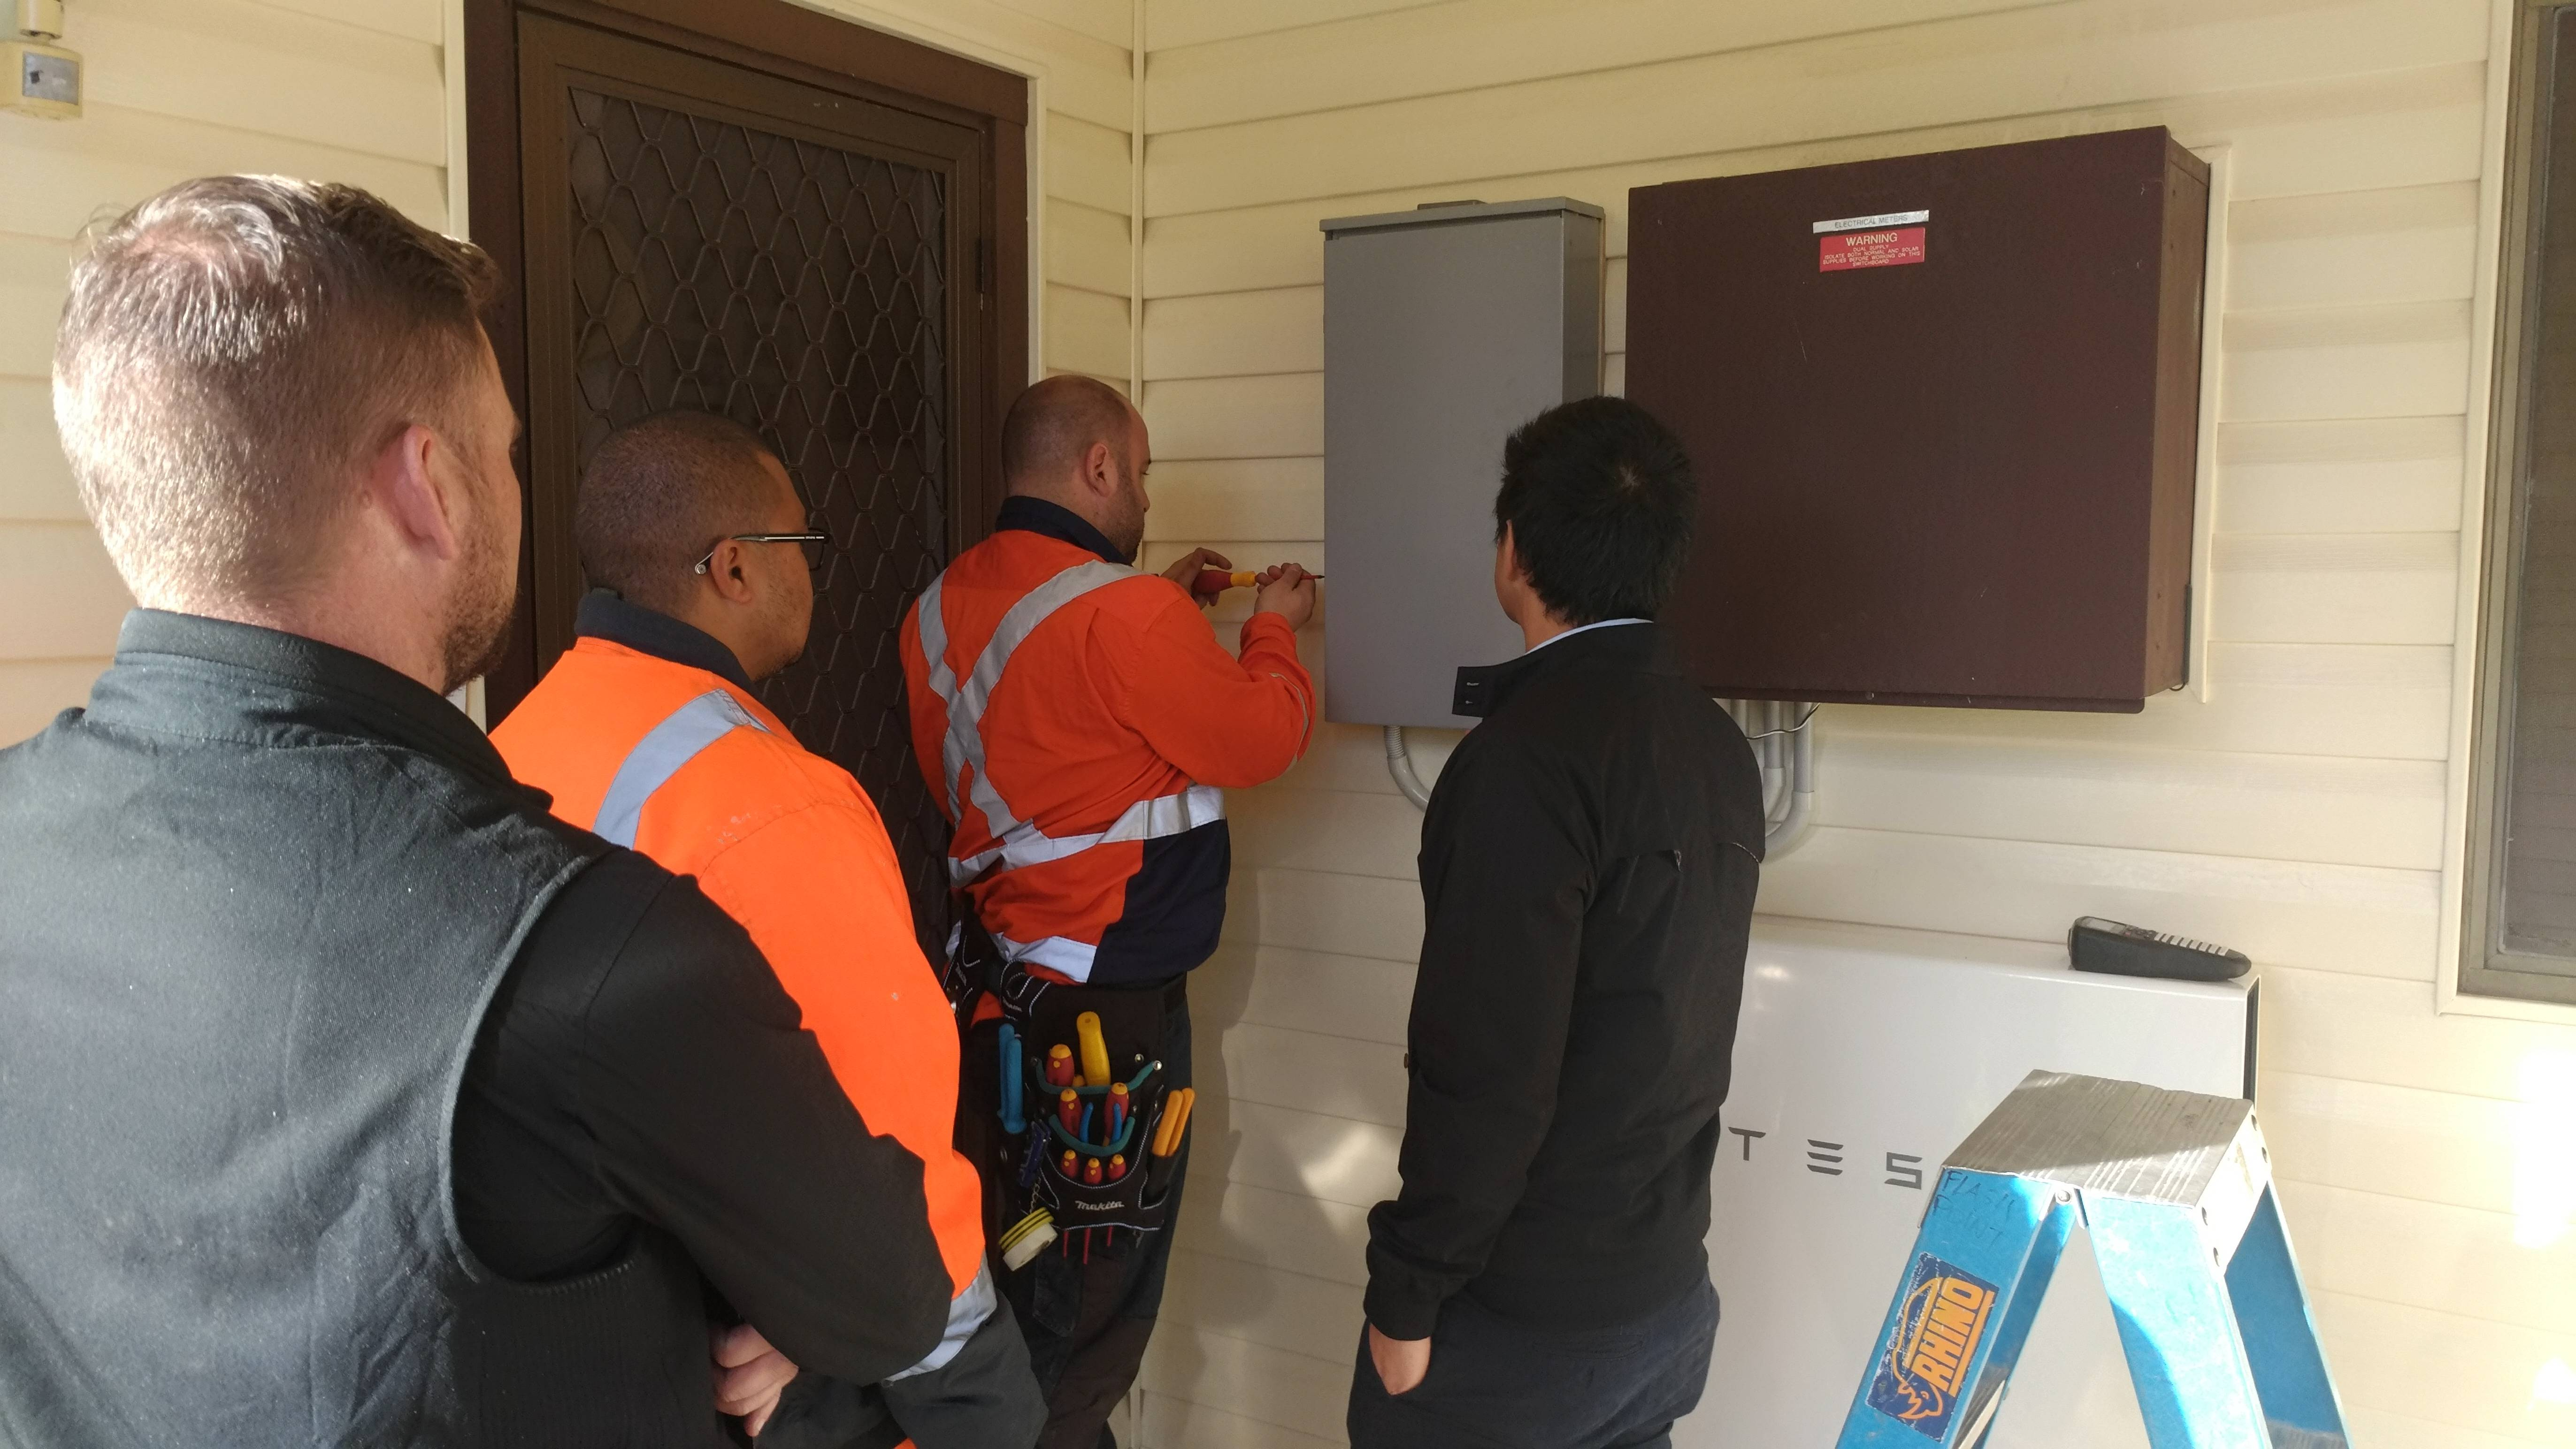 Australian Tesla Powerwall 2 Review Mikesgear If You Run Out Of Room On The Starter Relay Quotbquot Post Install A Power It Isolates Itself From Grid When Fails So Solar System Stays Up To Charge Battery And Home Goes Down